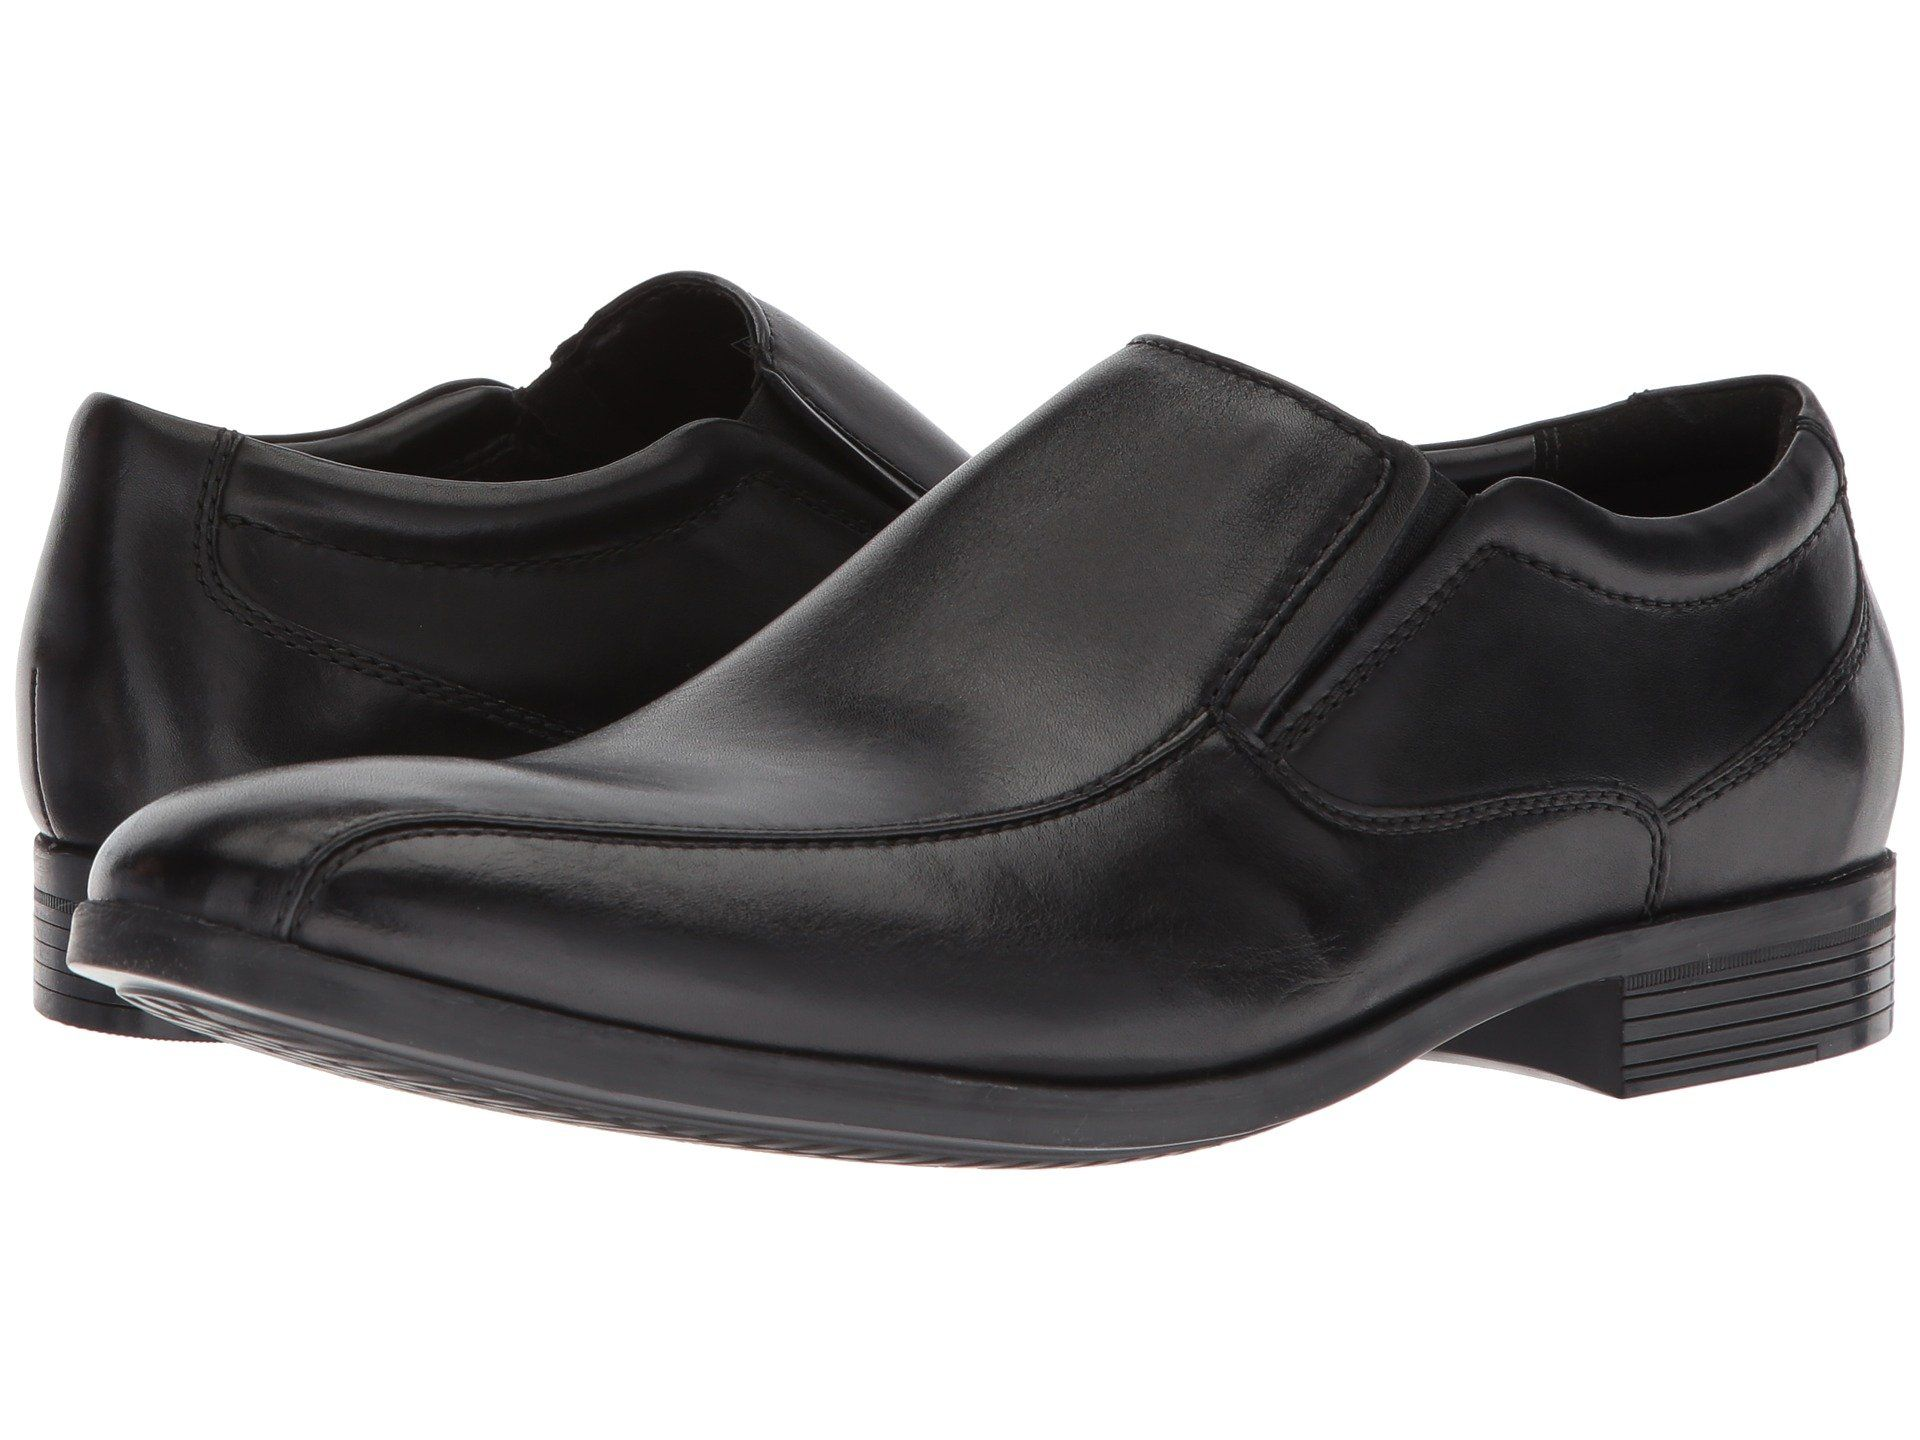 CLARKS Conwell Step. #clarks #shoes #